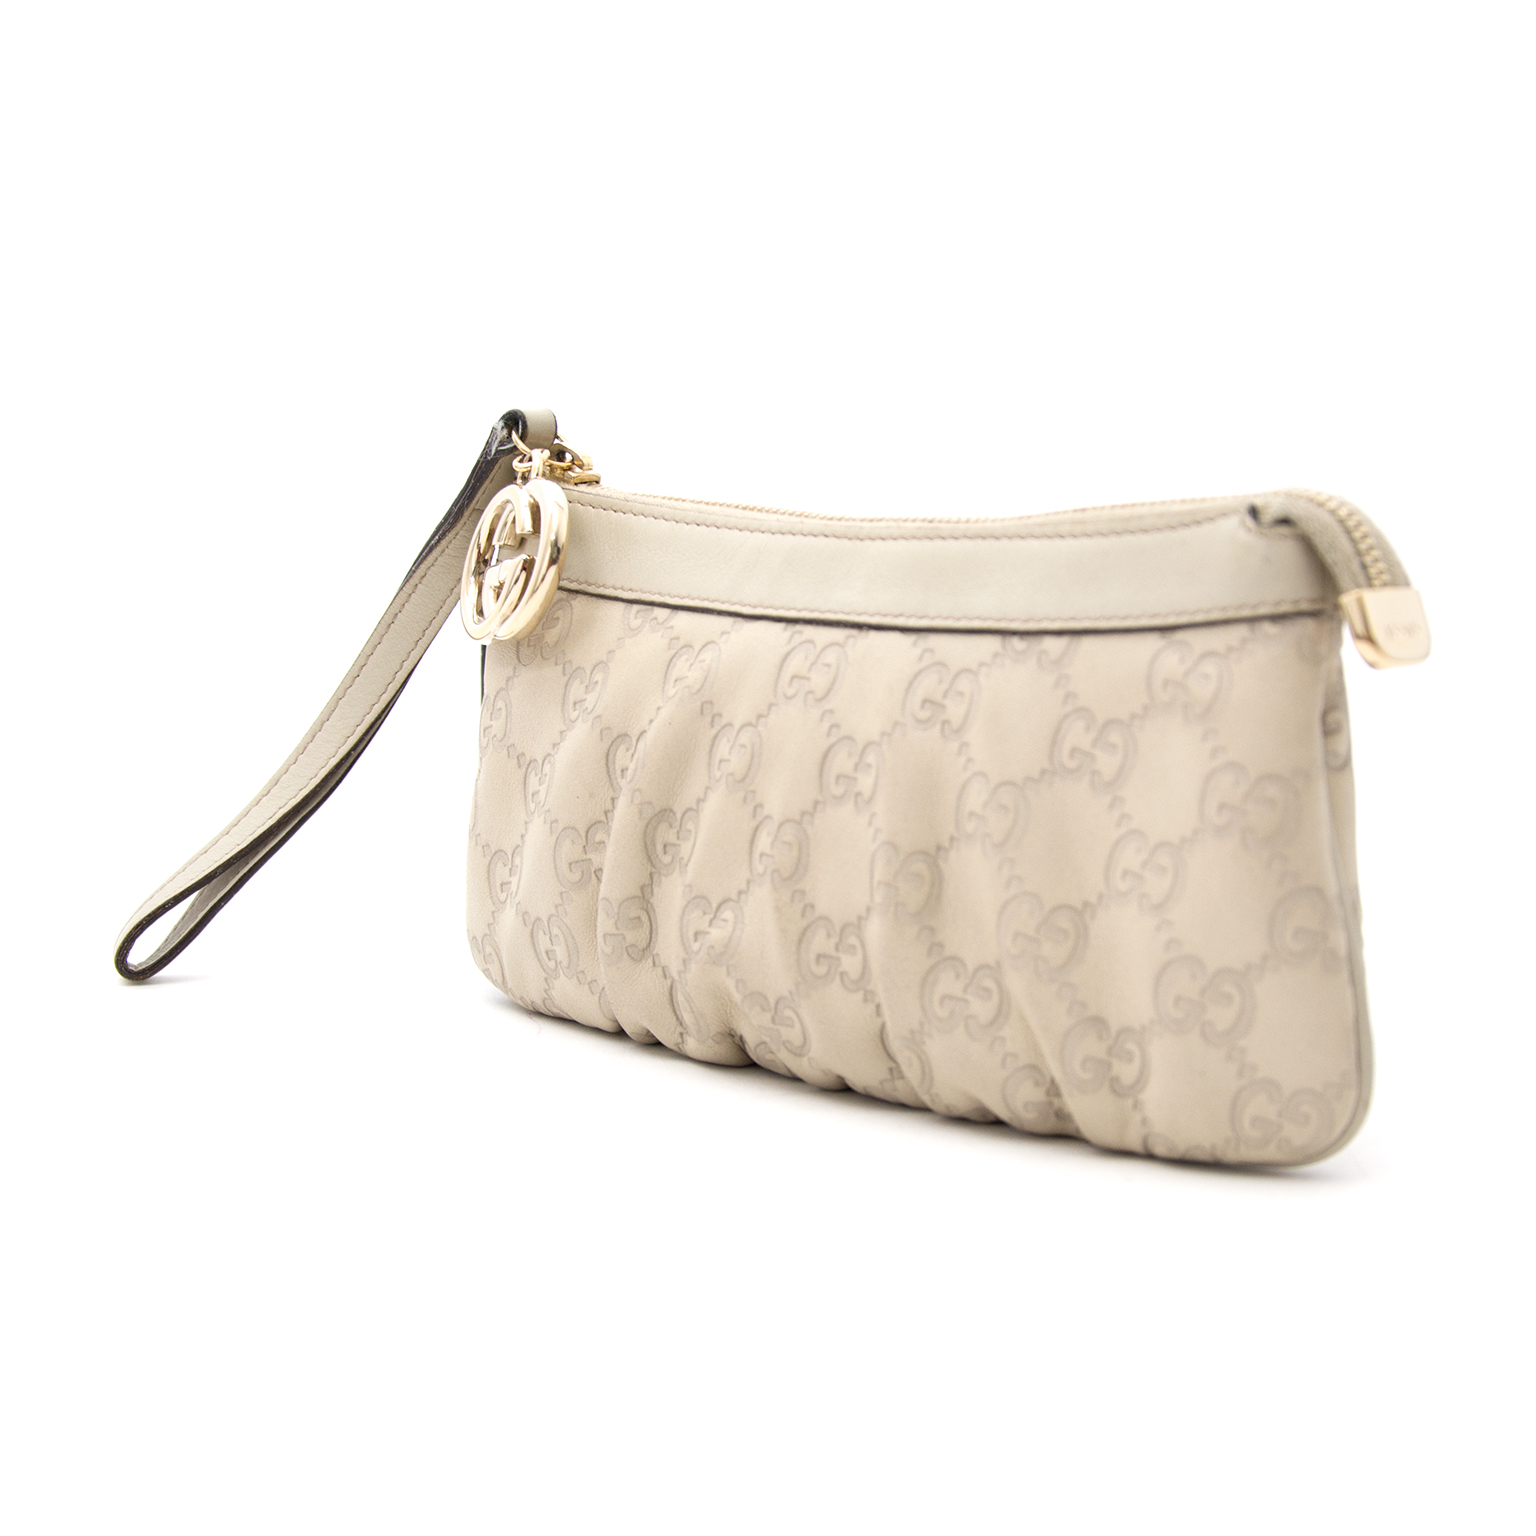 Gucci Creamy Colored Leather Guccissima Clutch now online at labellov.com for the best price.